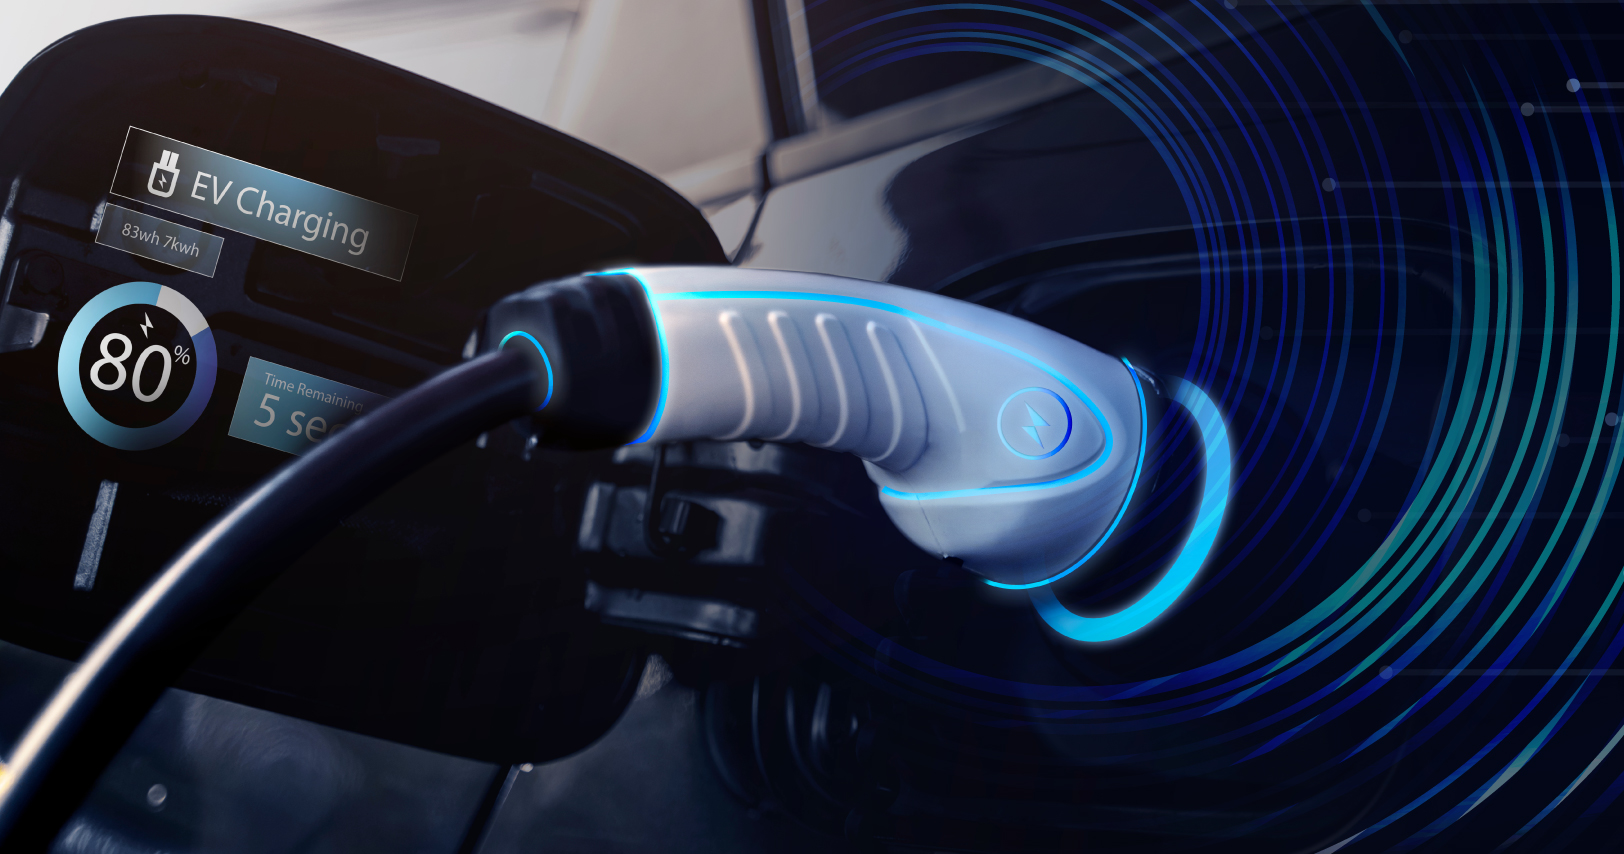 Top Automotive Industry Trends for 2021